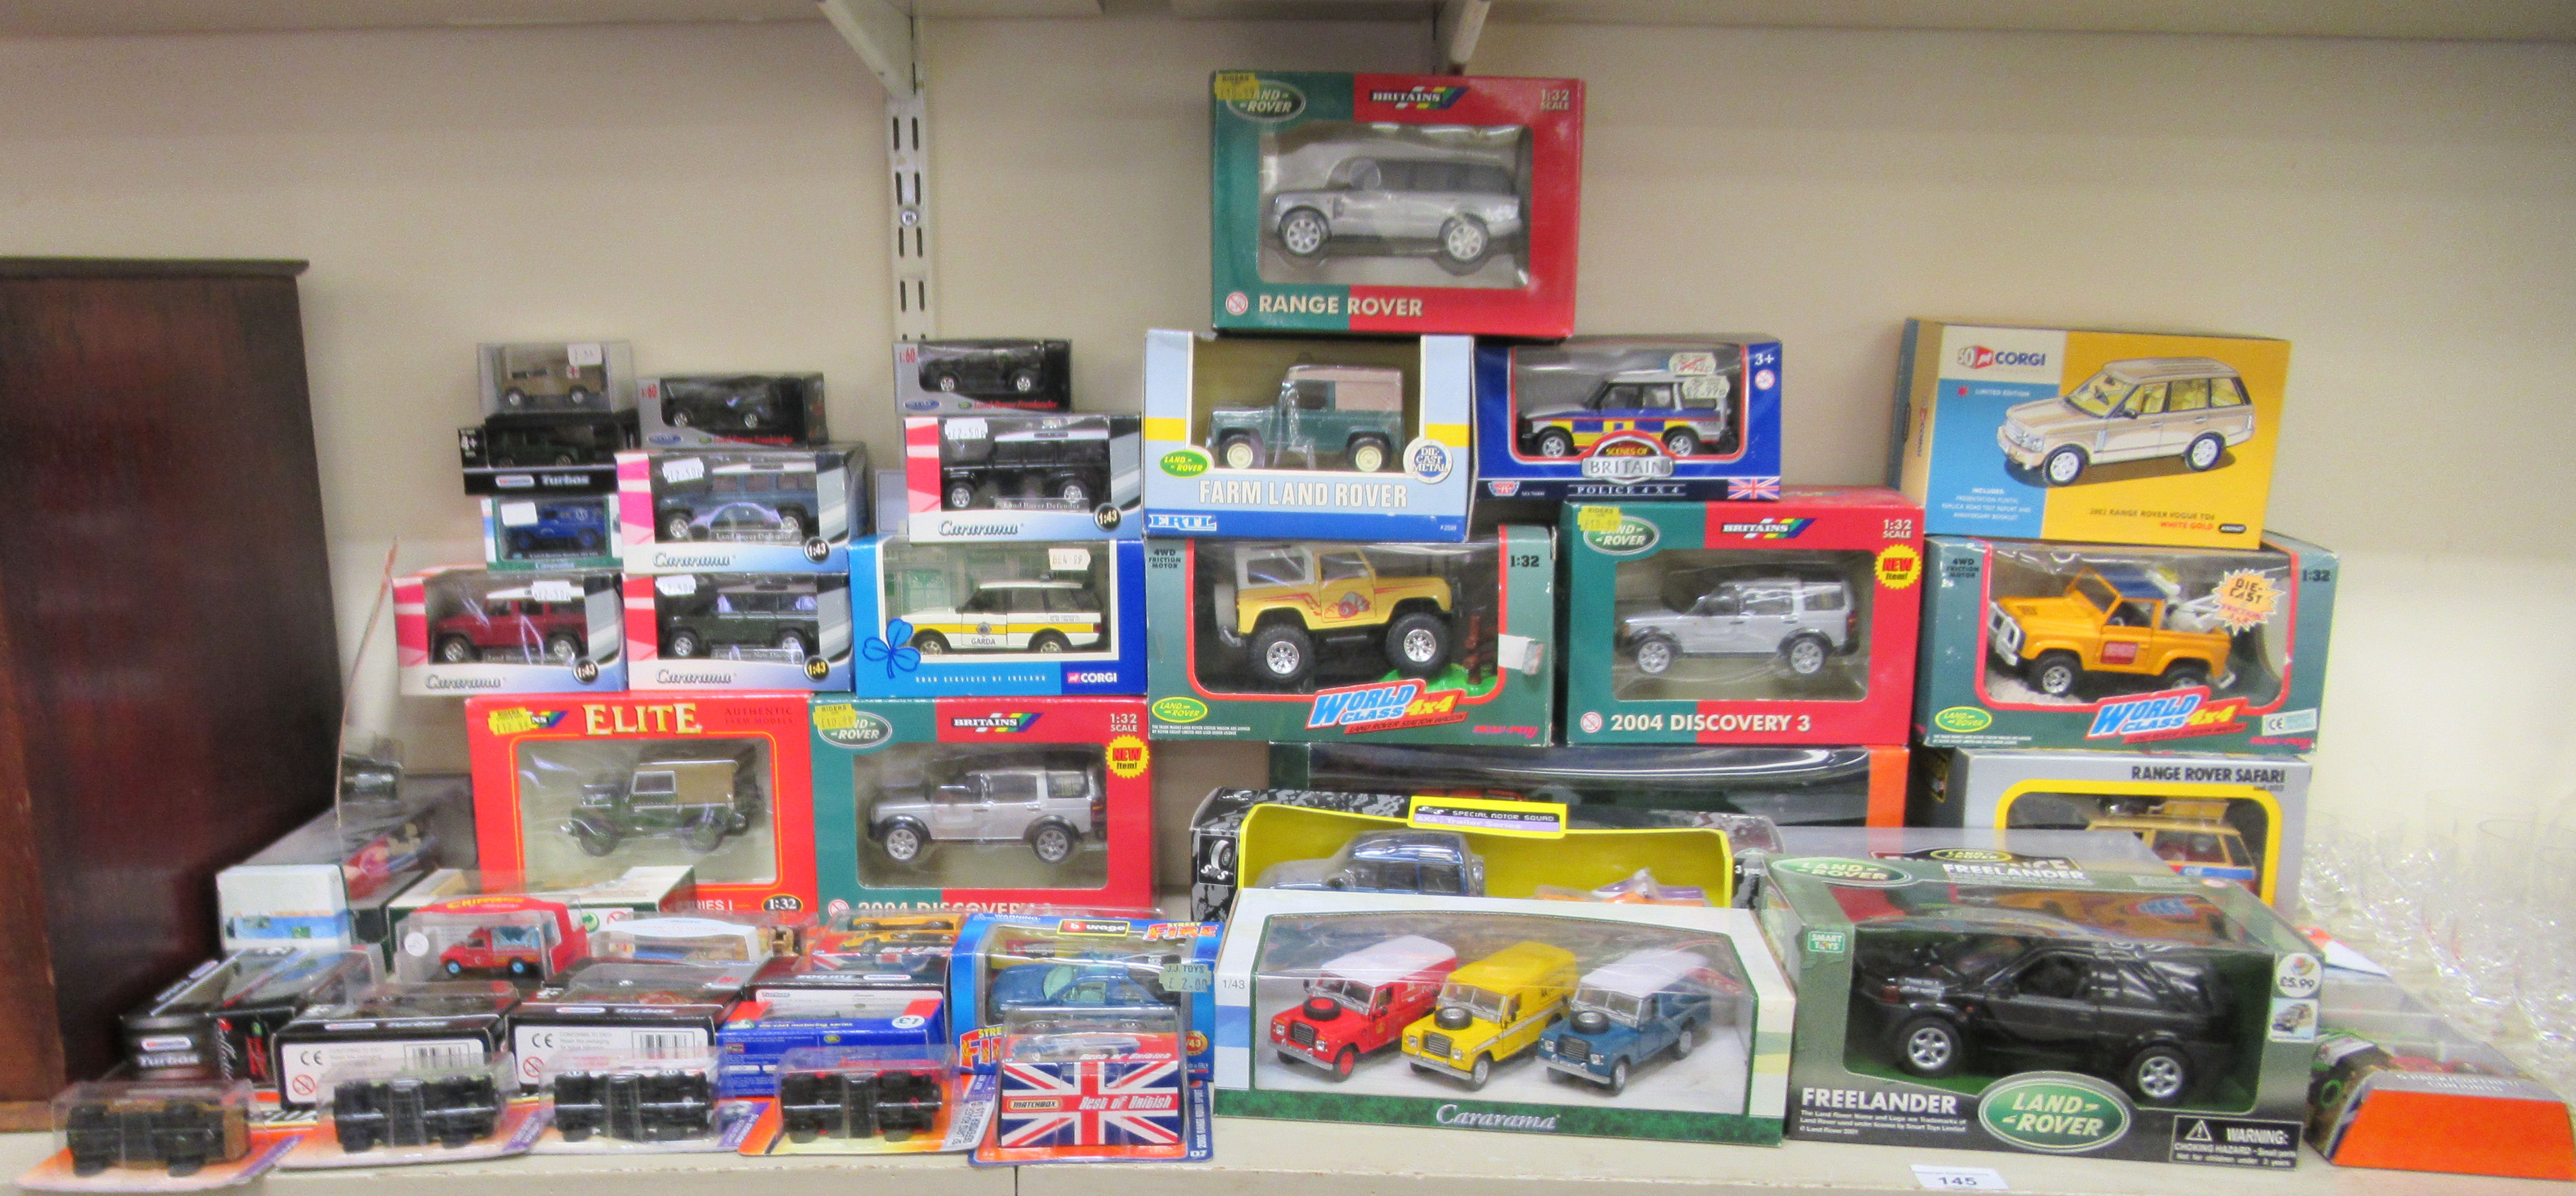 Diecast model vehicles: to include a Corgi 2002 Range Rover Vogue boxed